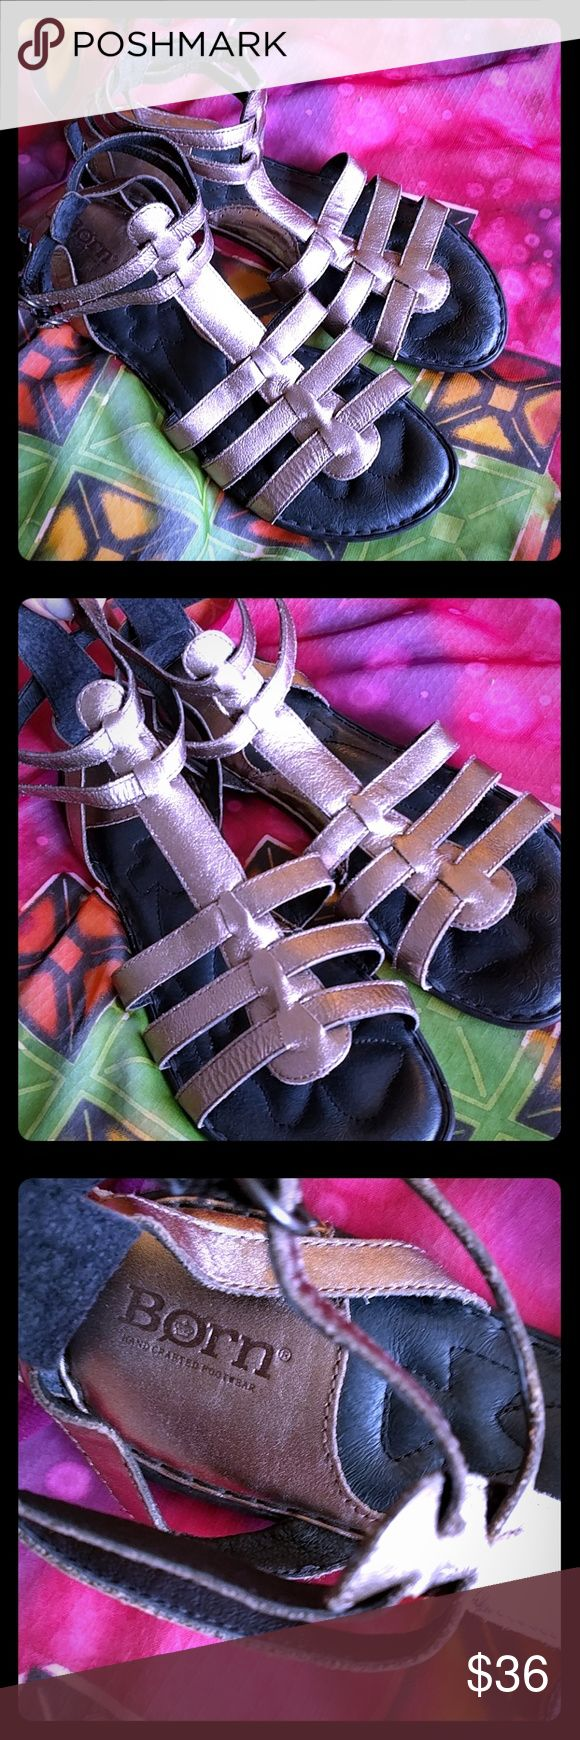 Born macadamia pewter sandals size 10 Pewter born gladiator sandal, with rubber heels. Very comfortable, worn several times but no damage other than slight wear on soles. Born Shoes Sandals